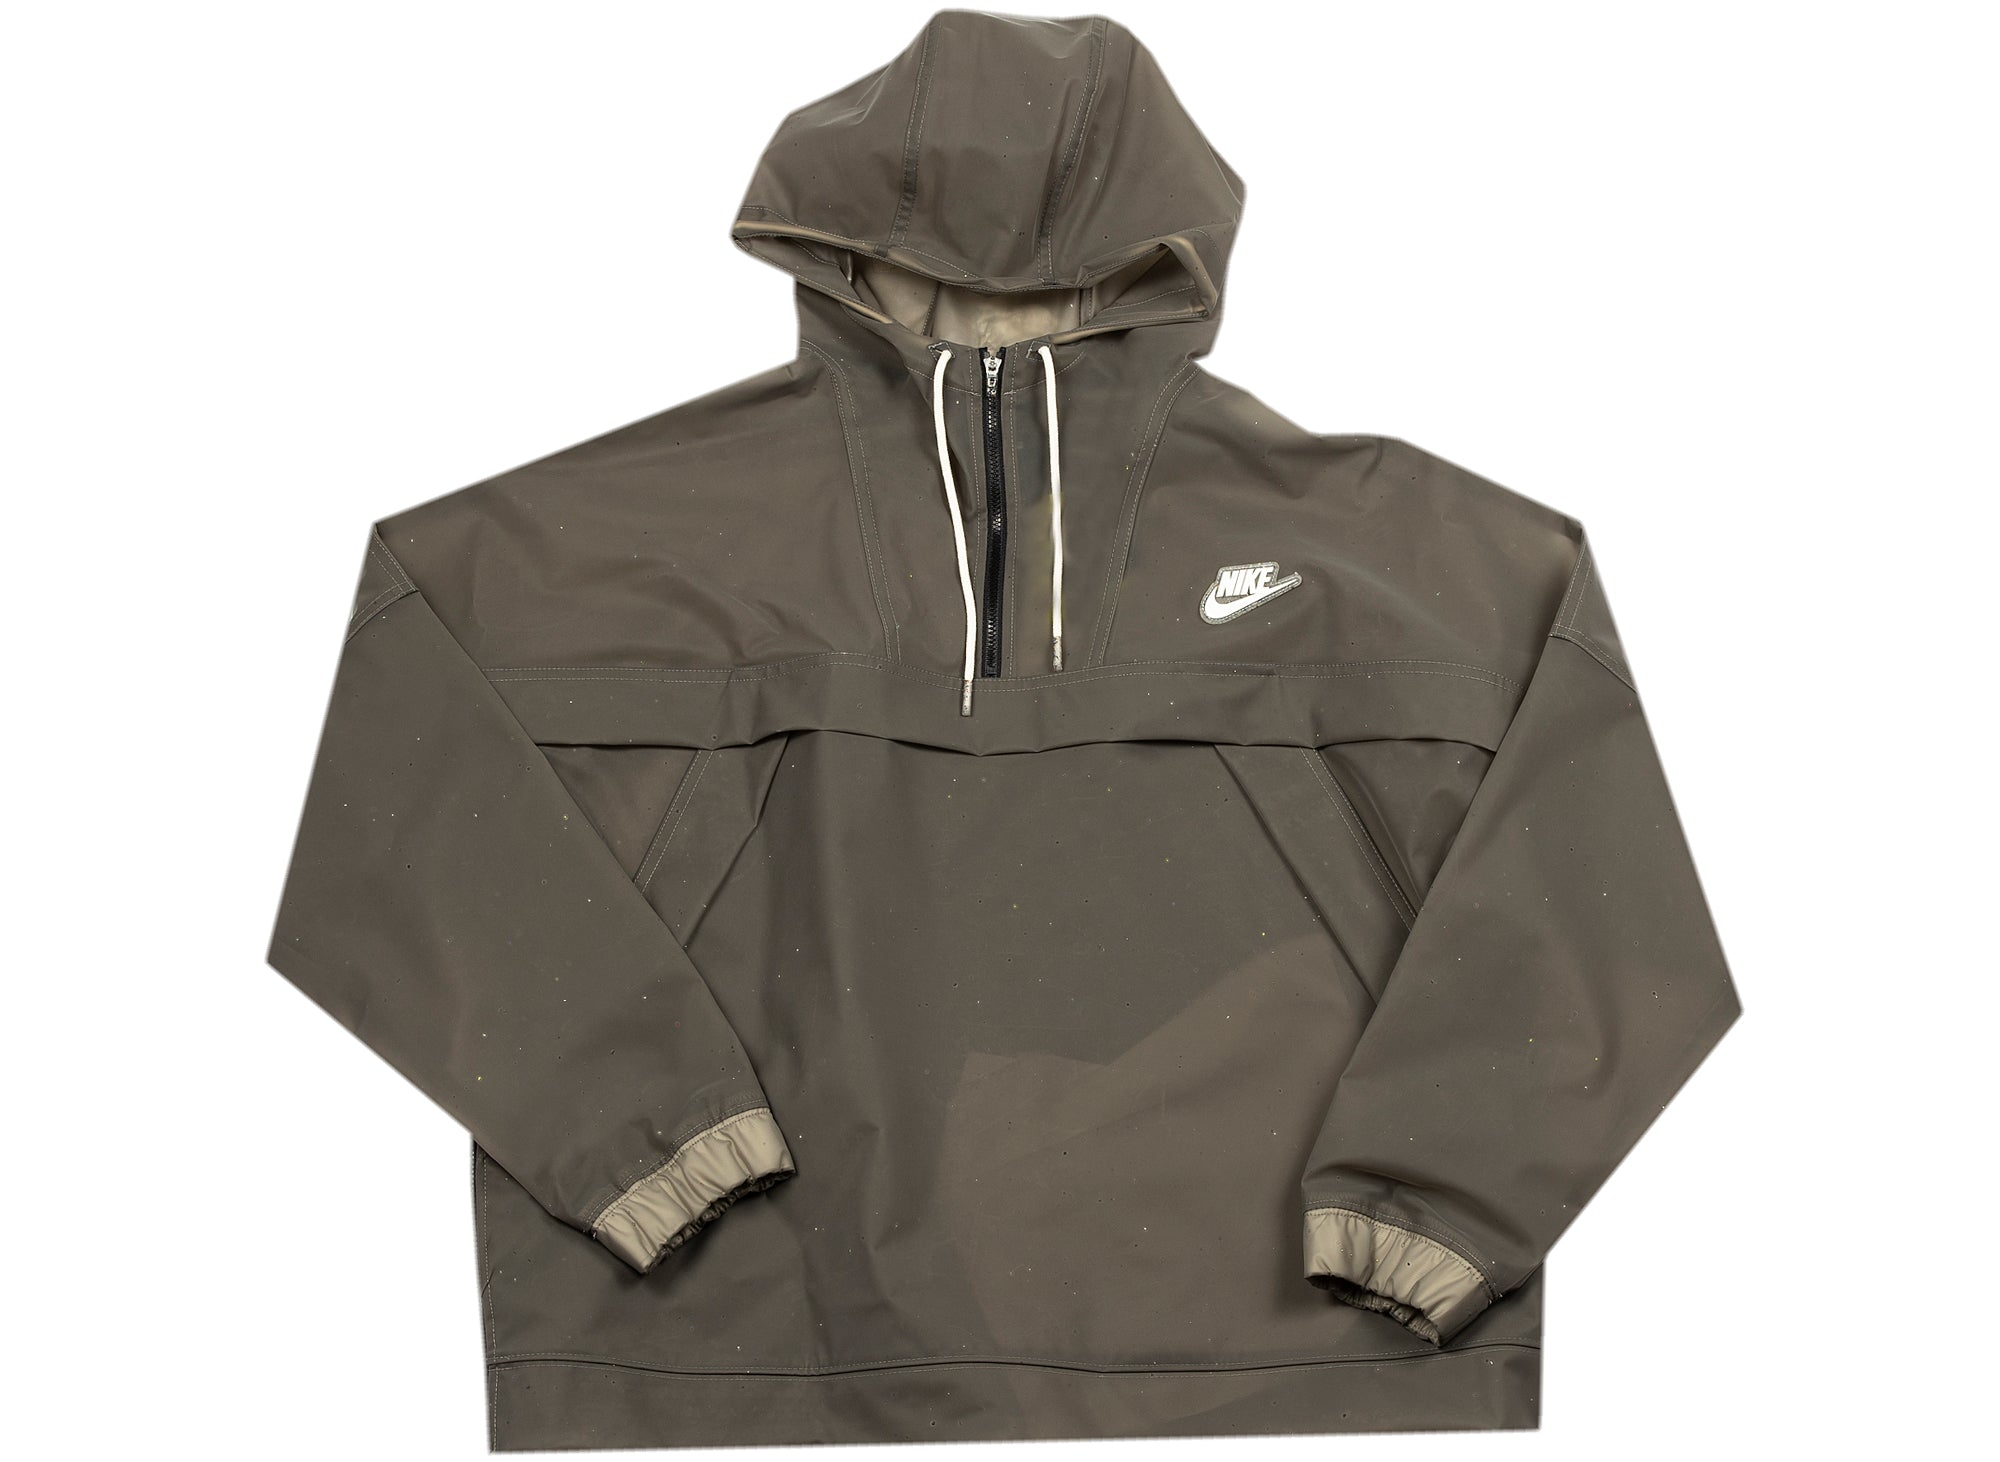 Women's Nike Sportswear Anorak Jacket in Black xld